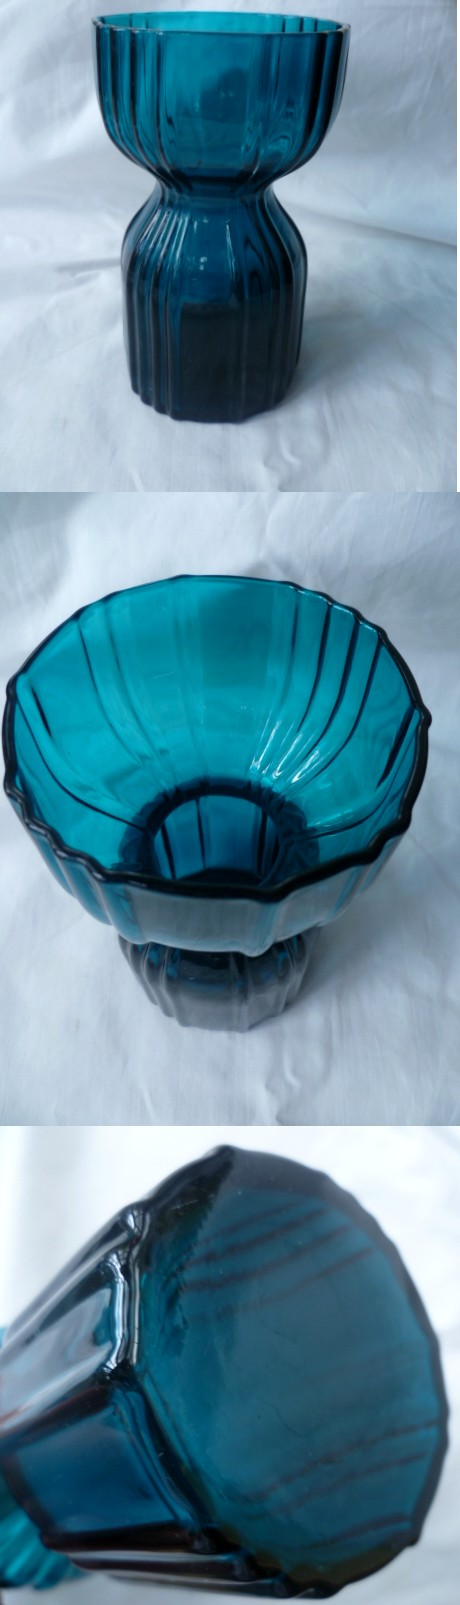 Akin to a Ronald Stennett-Wilsons Candle Holding Vase but it is not... Aunkno10